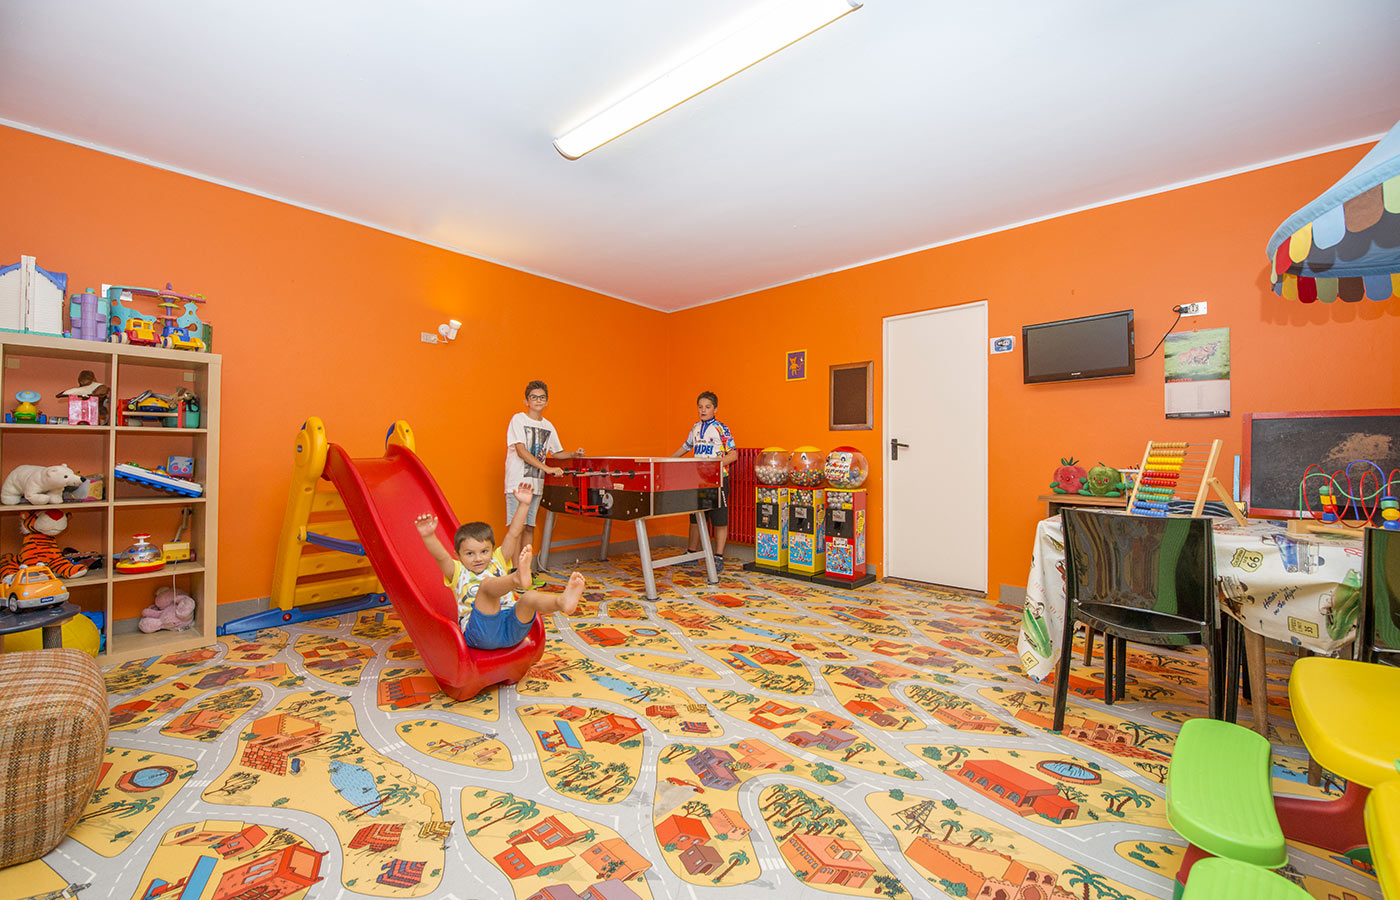 The playroom for children at Hotel Alpino